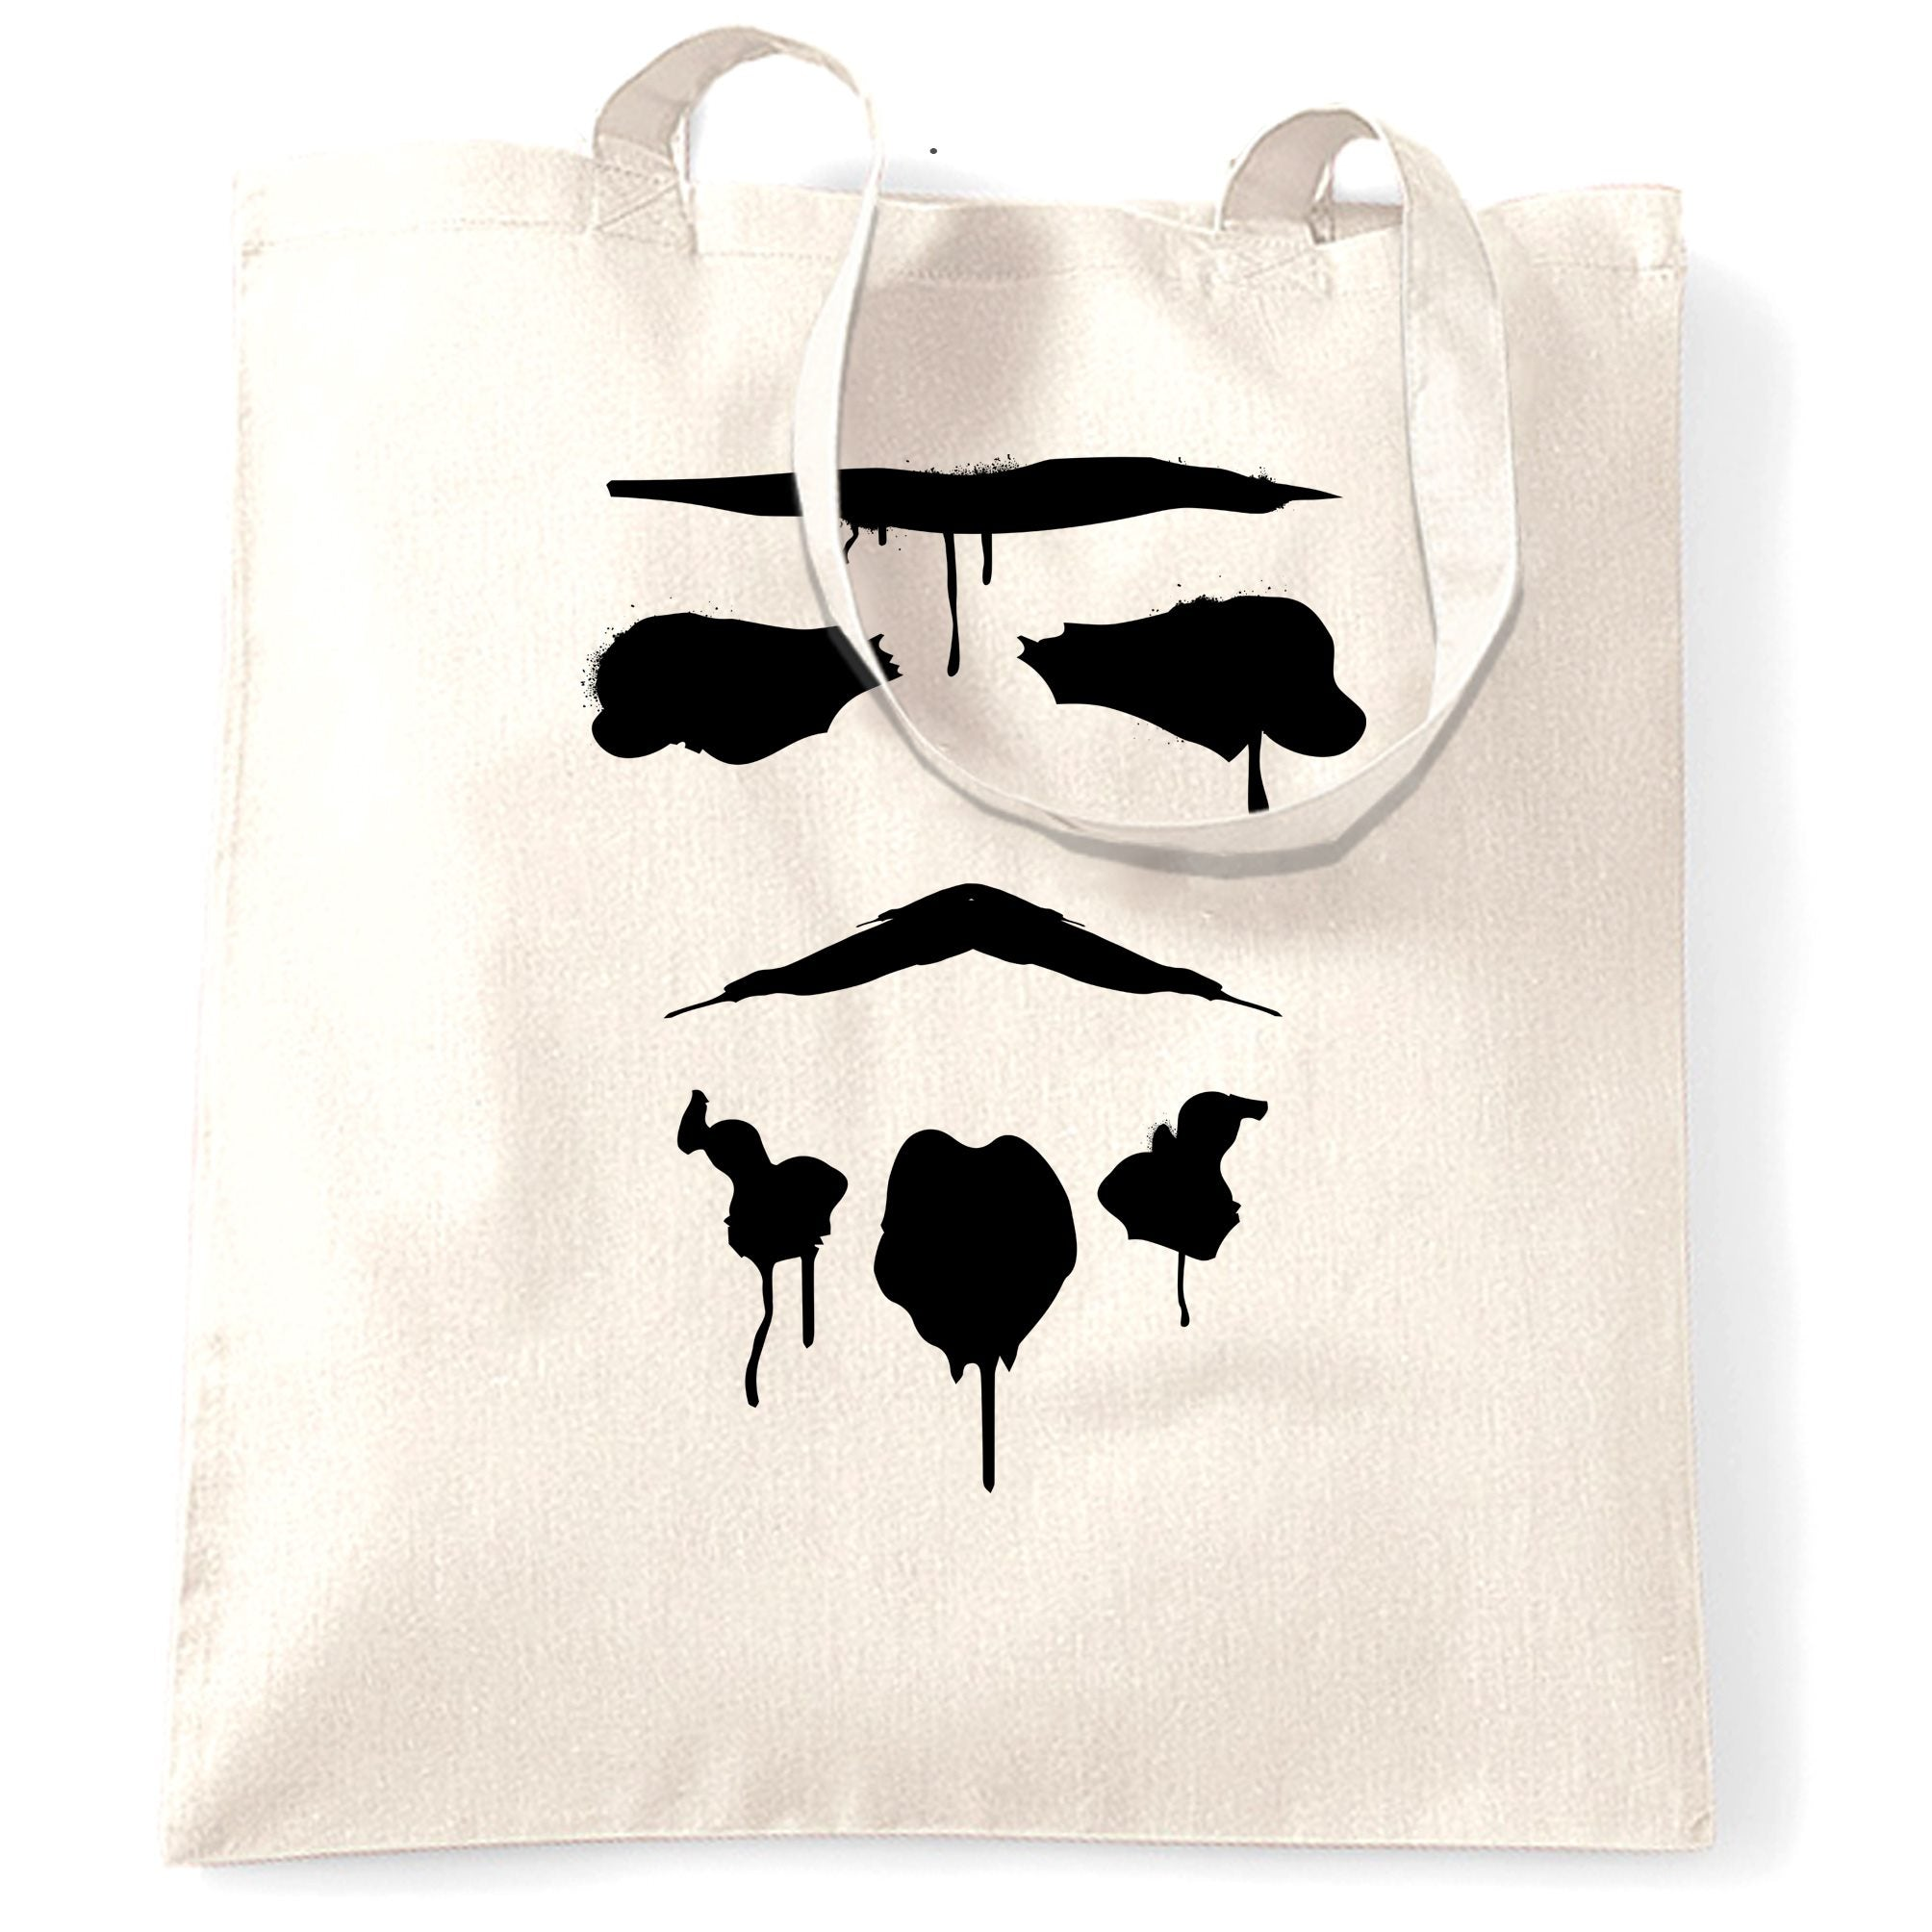 Graffiti Trooper Rorschach Mask Tote Bag